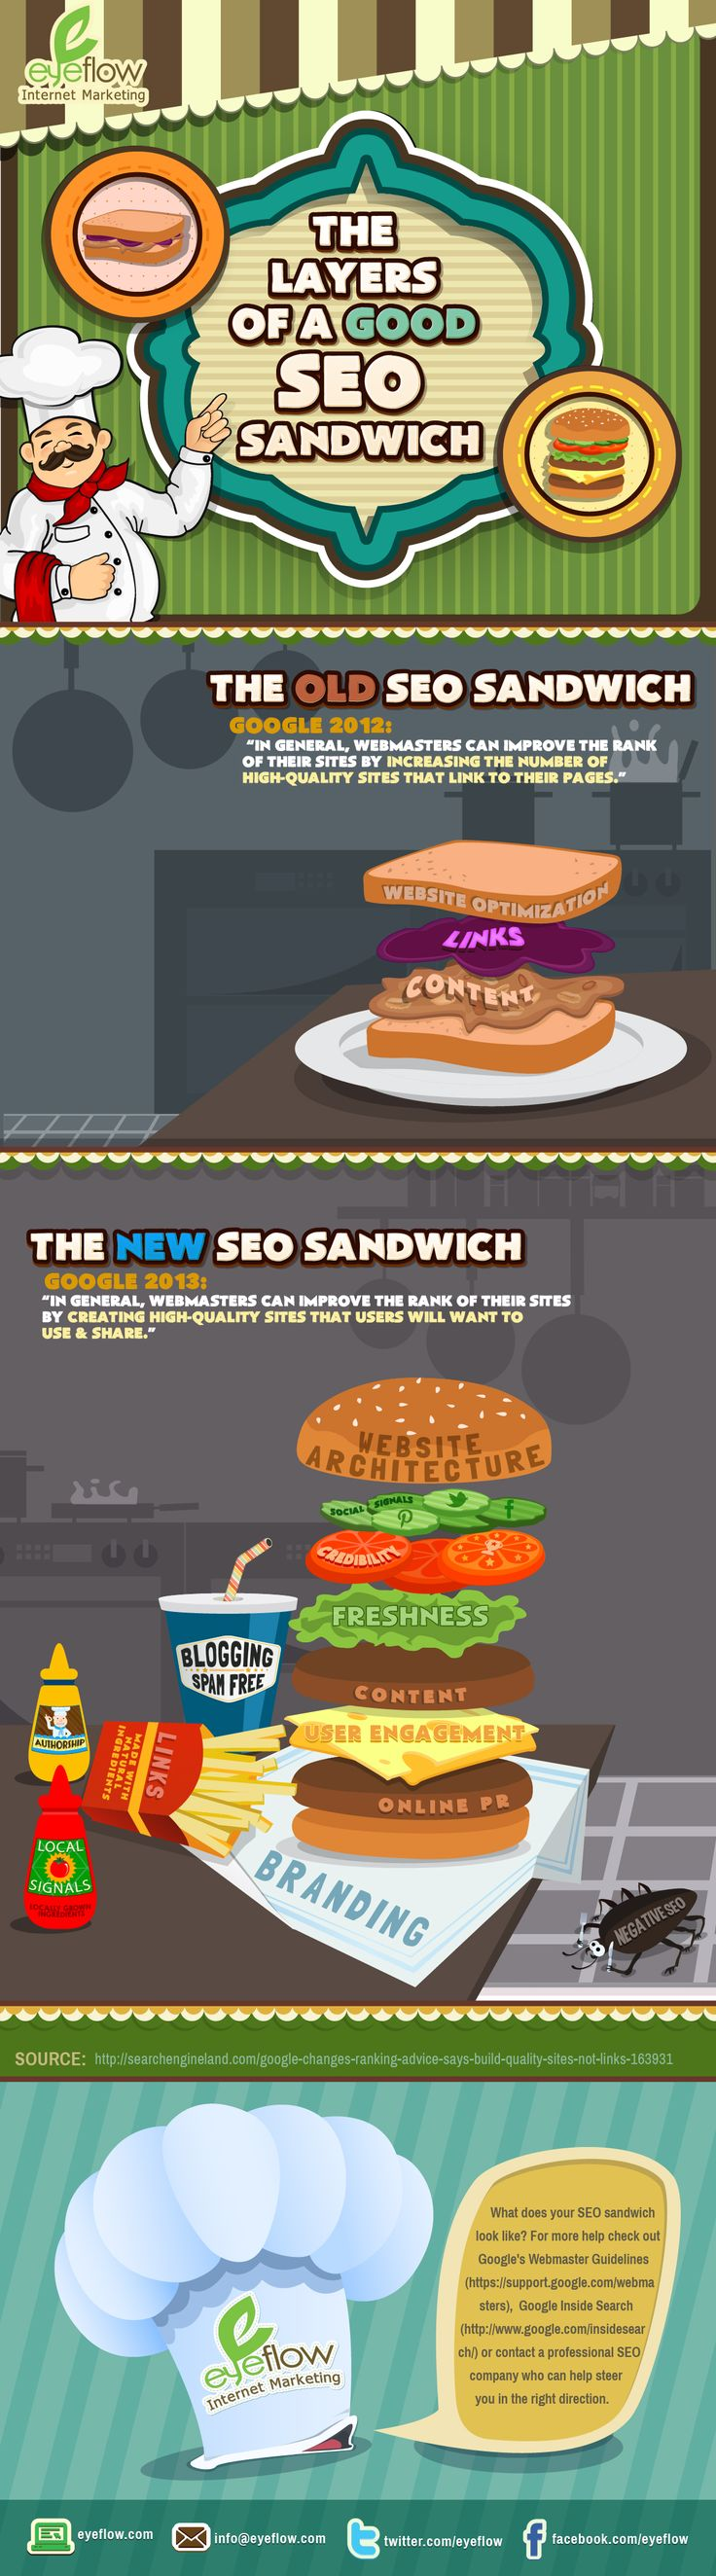 The layers of a good SEO sandwich #infographic